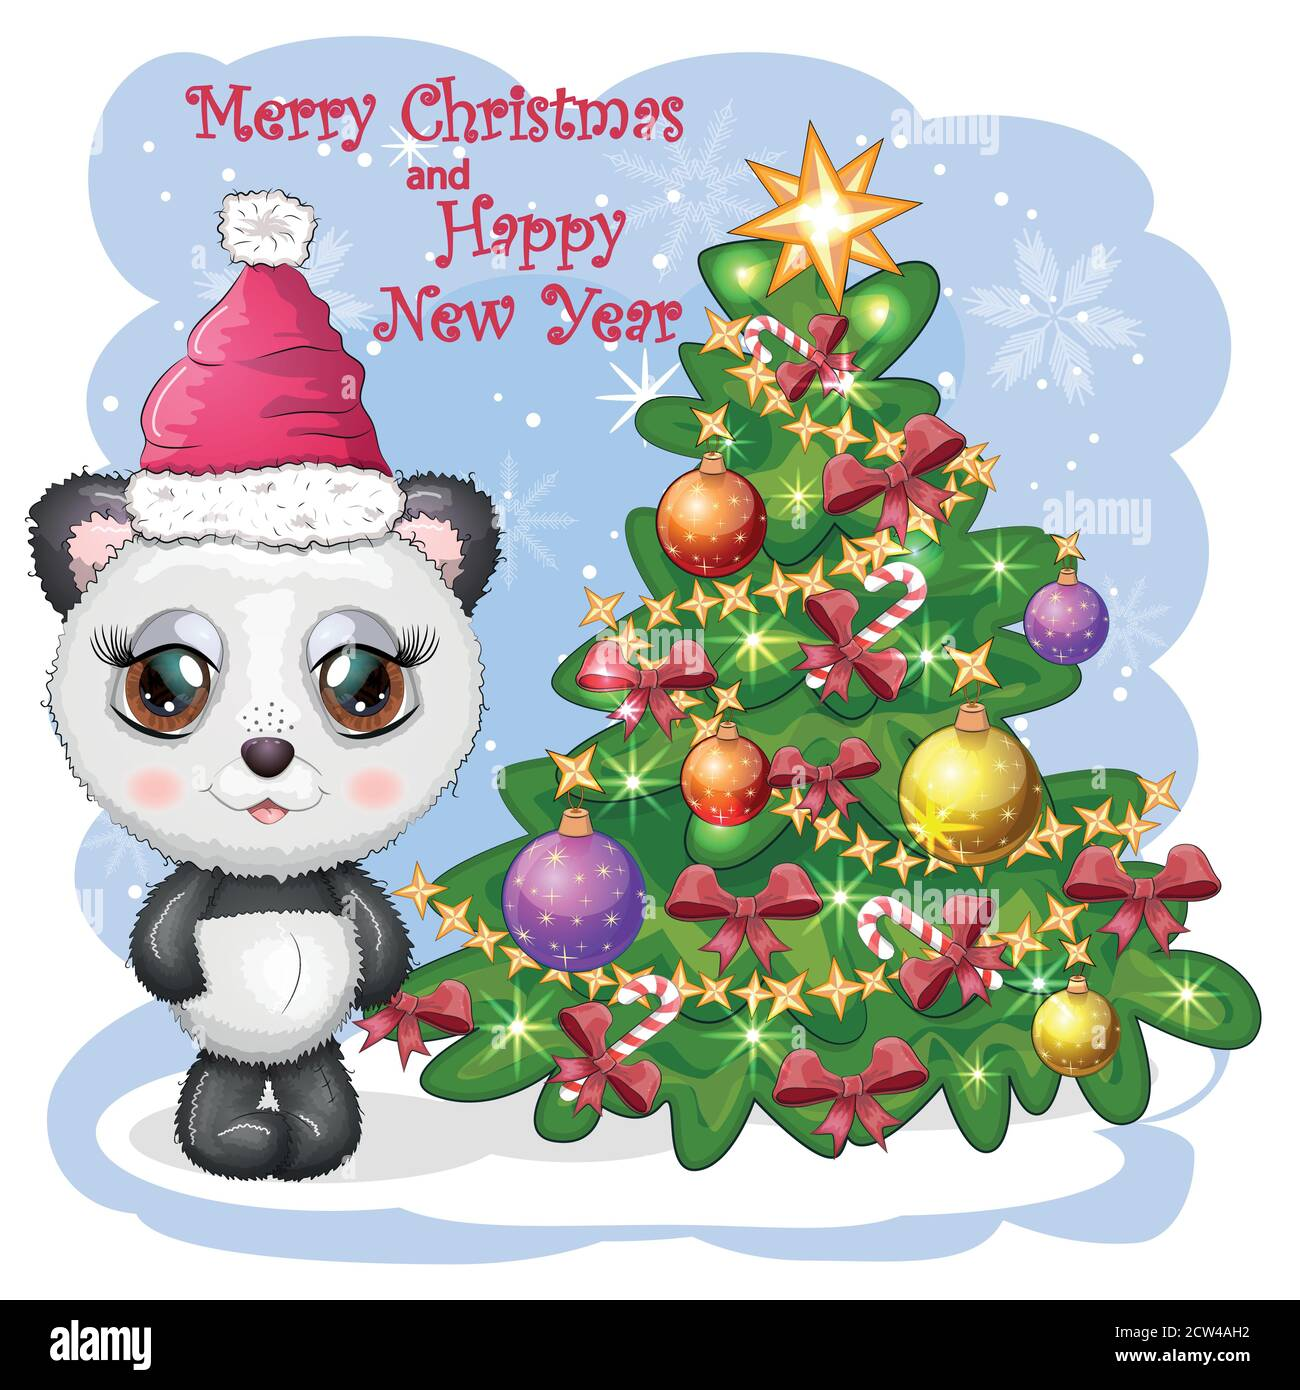 Cute Cartoon Panda Bear With Big Eyes In A Red Santa Claus Hat Near The Christmas Tree Greeting Card Stock Vector Image Art Alamy Download 2,504 cartoon christmas tree free vectors. alamy